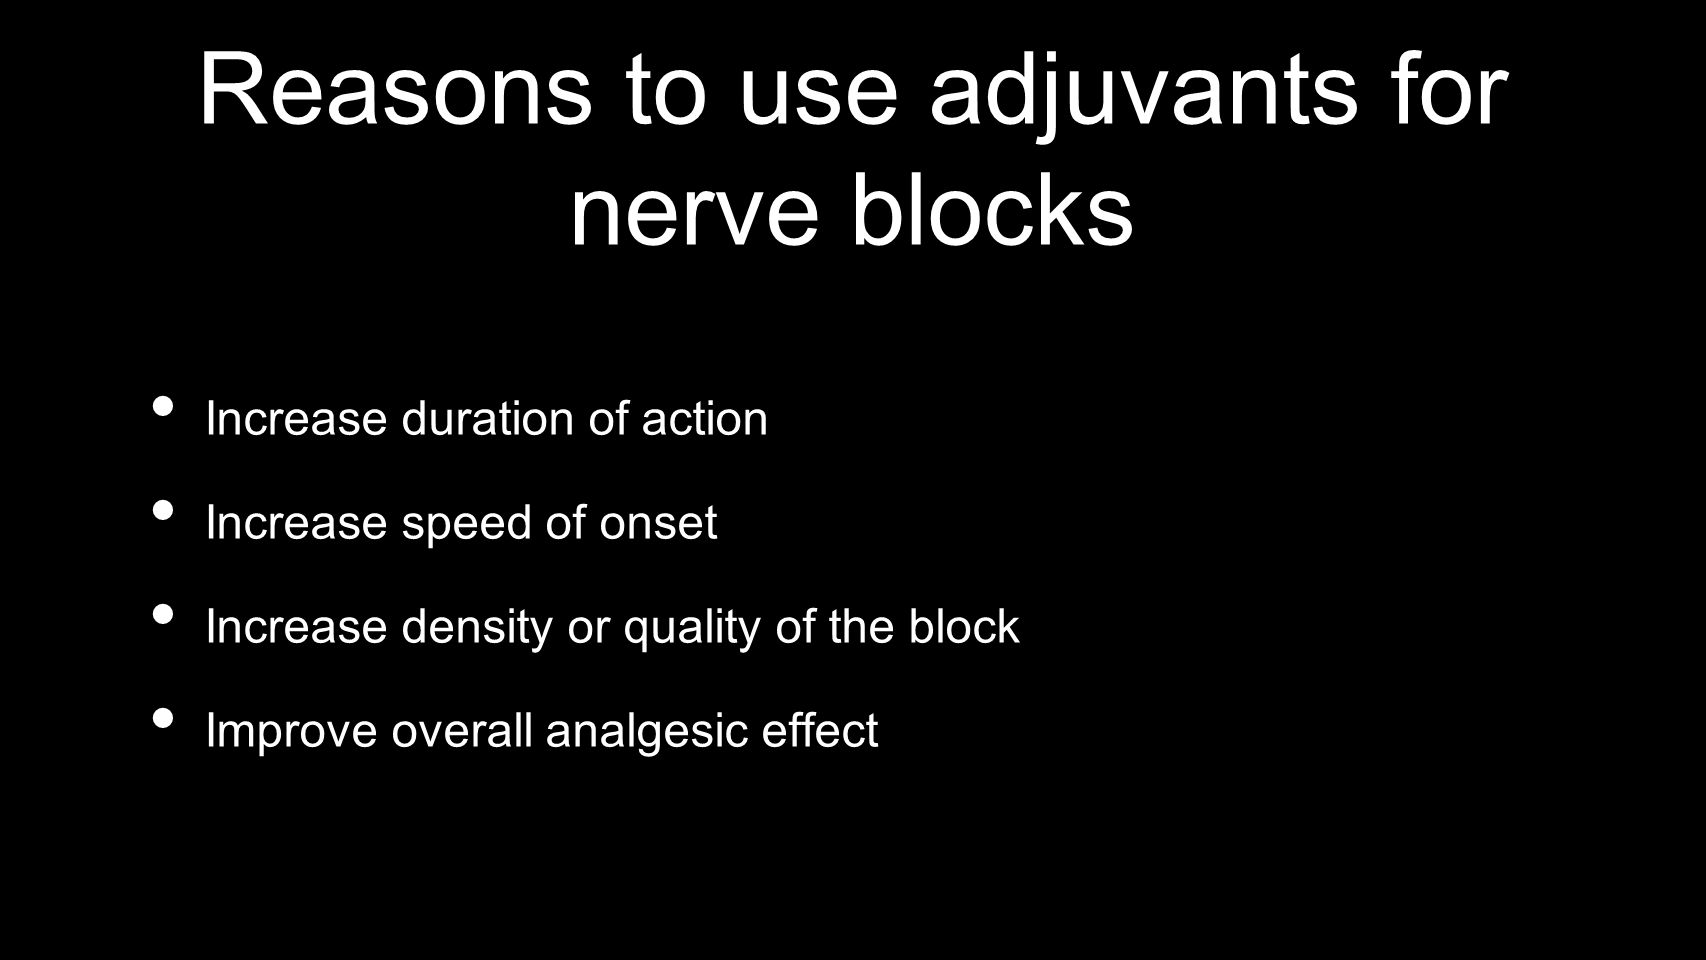 Reasons to use adjuvants for nerve blocks Increase duration of action Increase speed of onset Increase density or quality of the block Improve overall analgesic effect